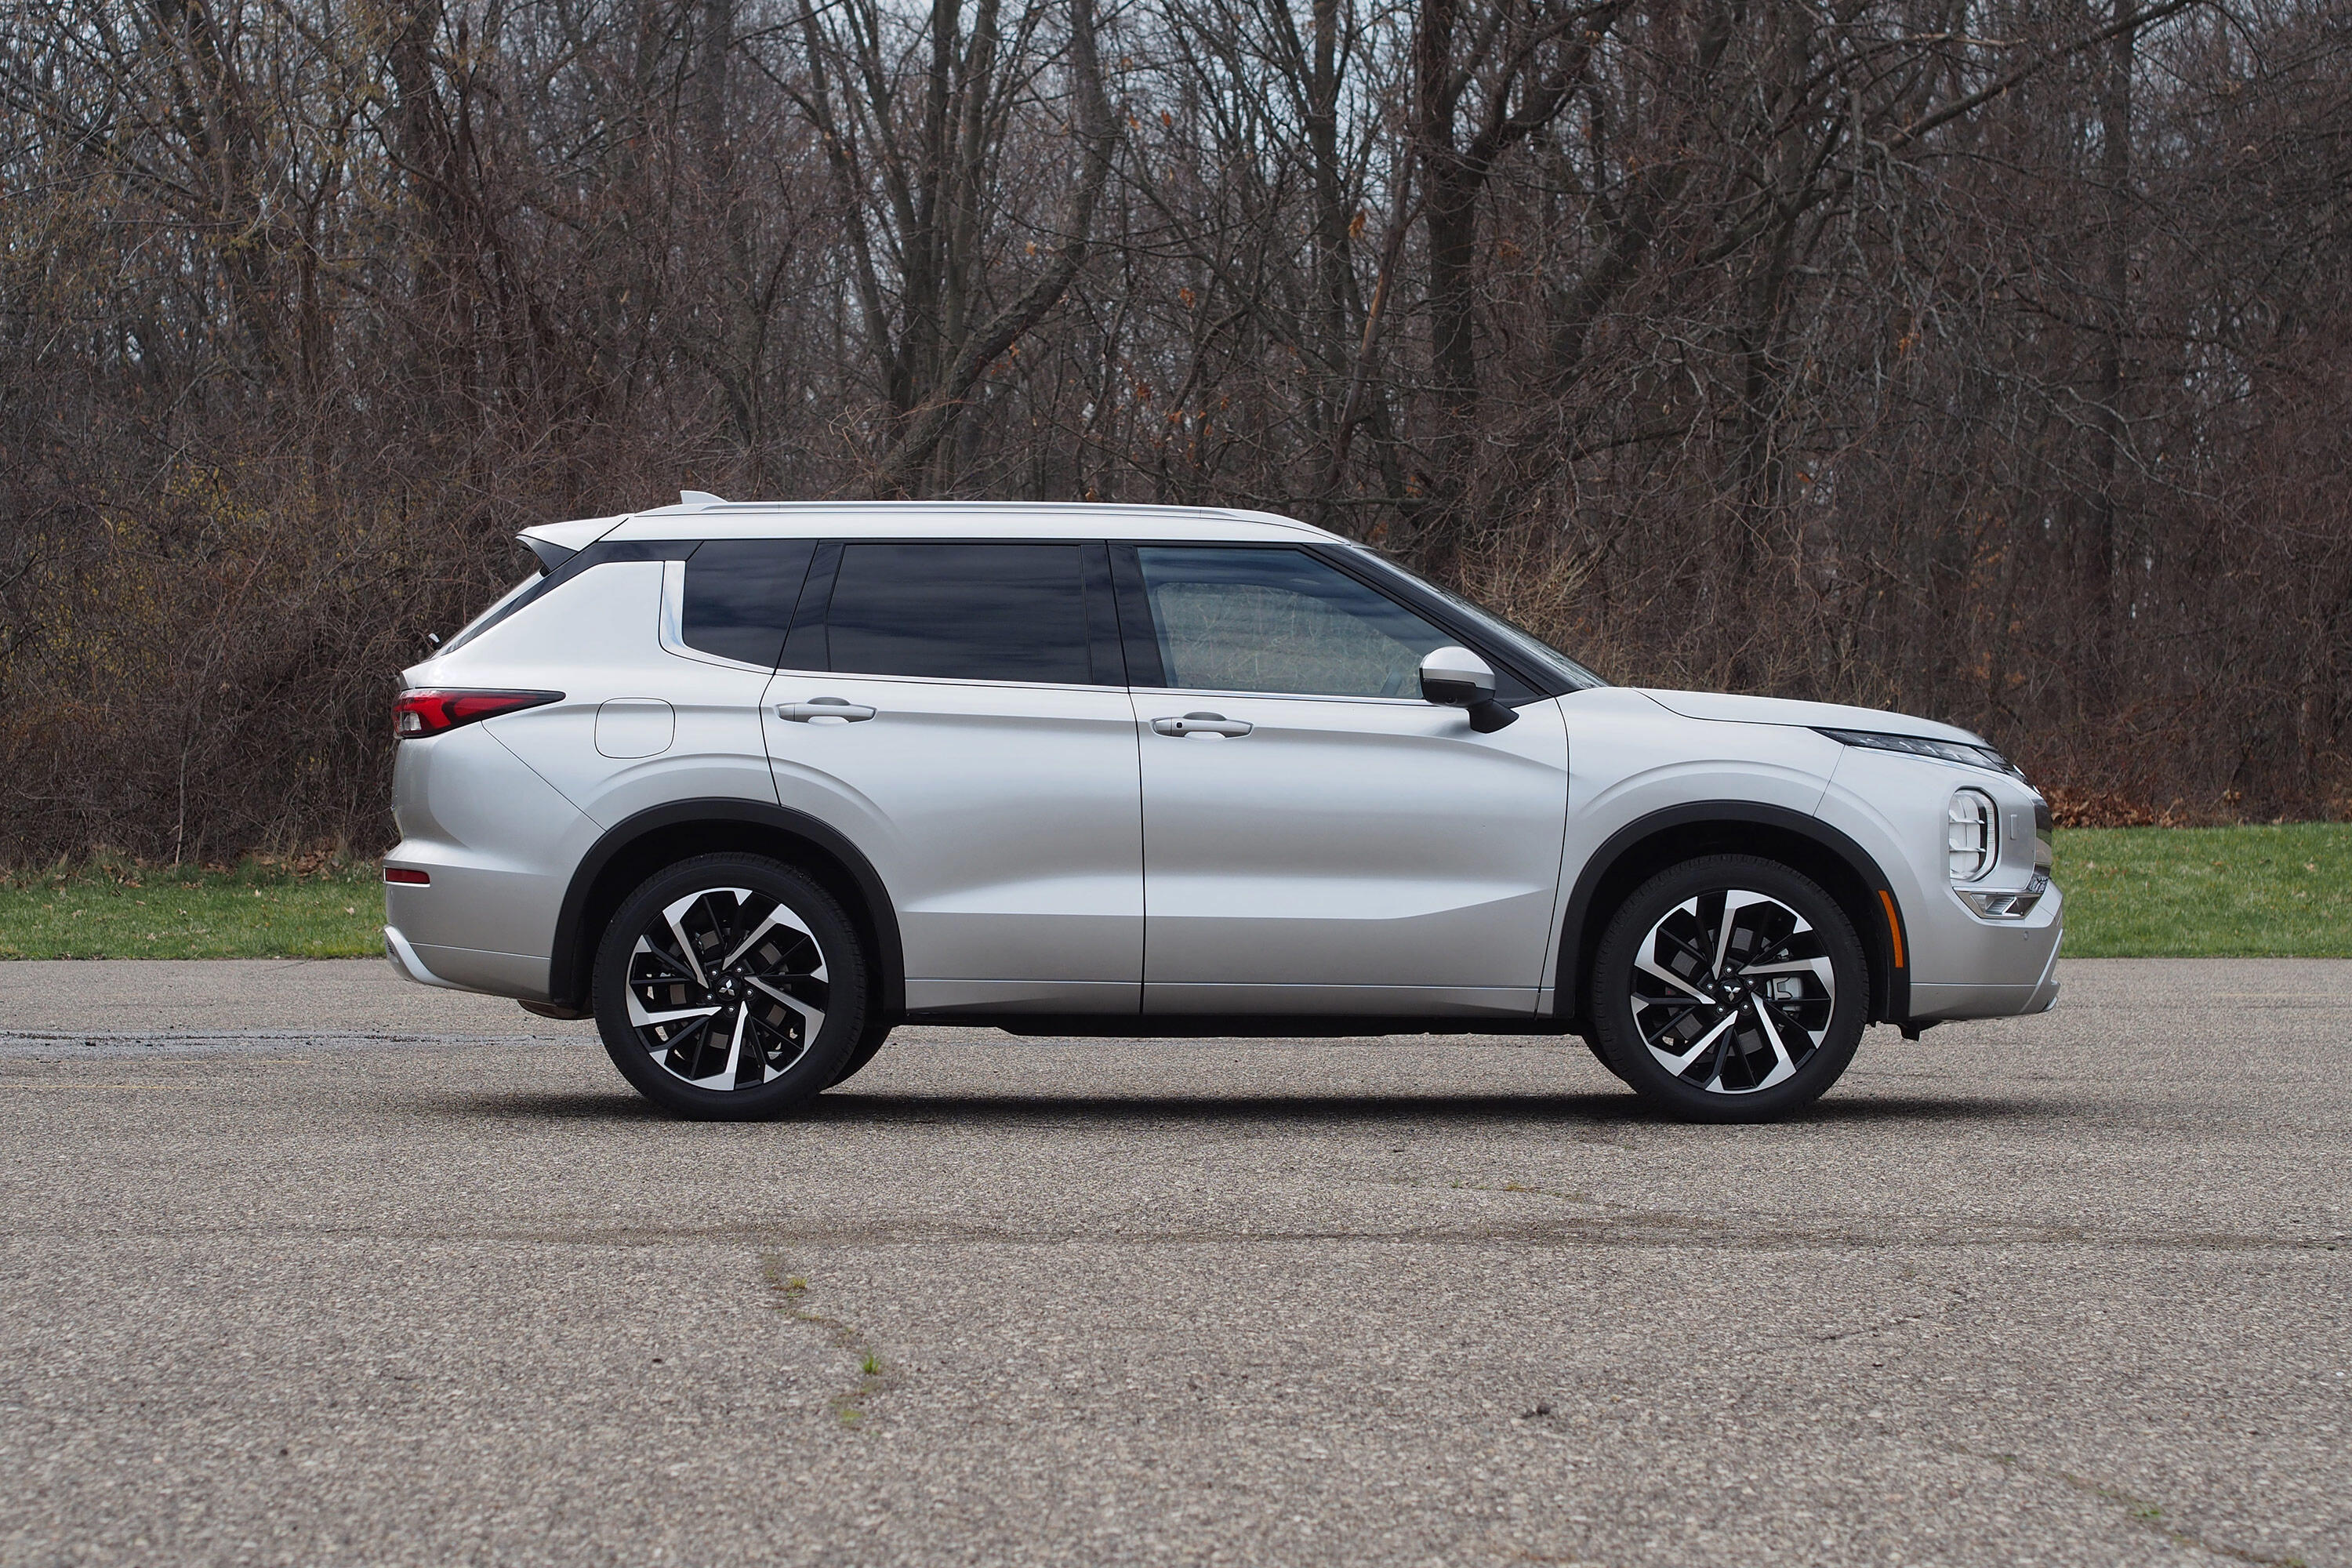 2022 Mitsubishi Outlander SEL Touring - wheels